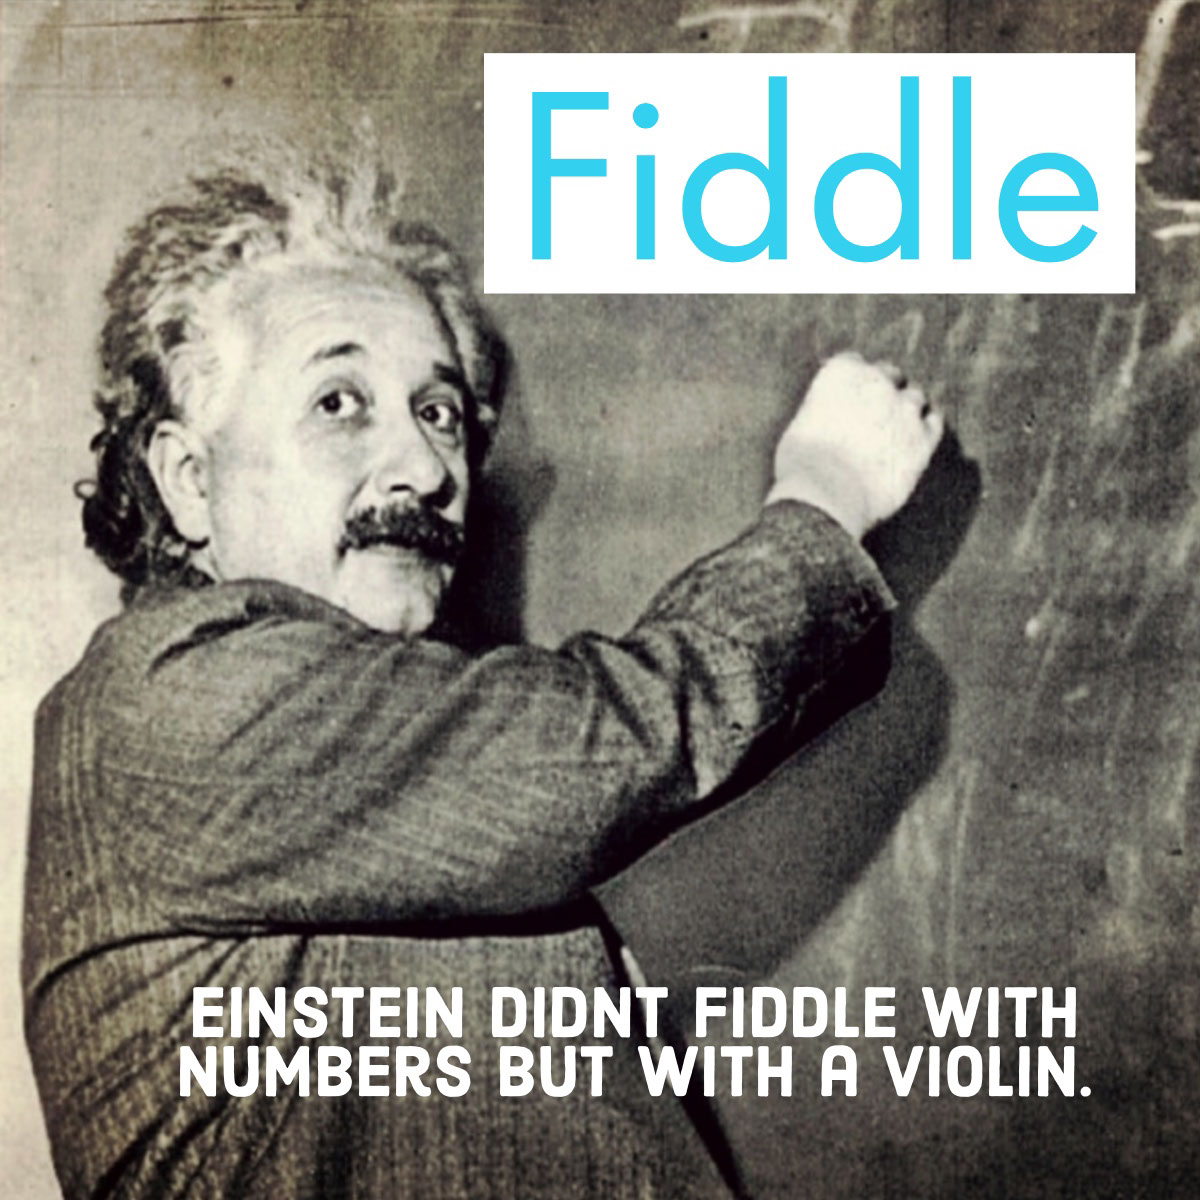 Fiddle Meme Fiddle<P>Einstein didnt fiddle with numbers but with a violin.